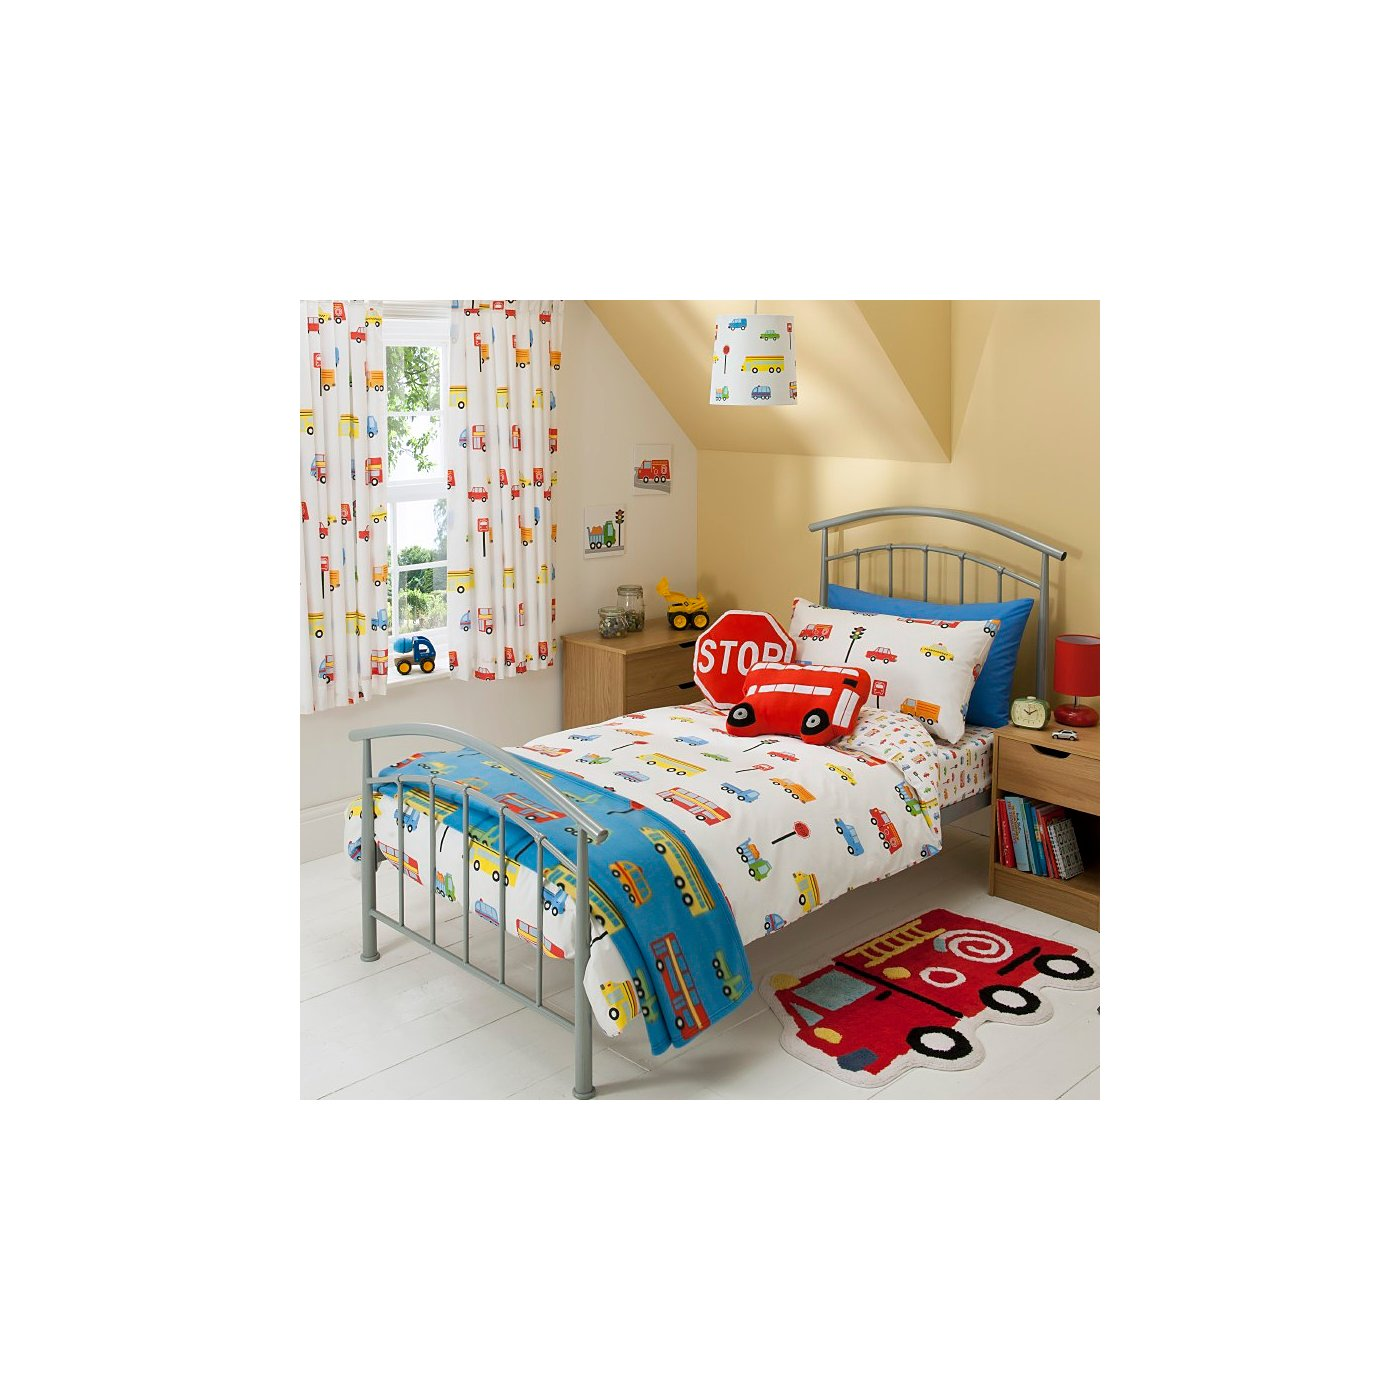 Kids Bedroom Bedding George Home Transport Bedroom Range Baby Bedding George At Asda